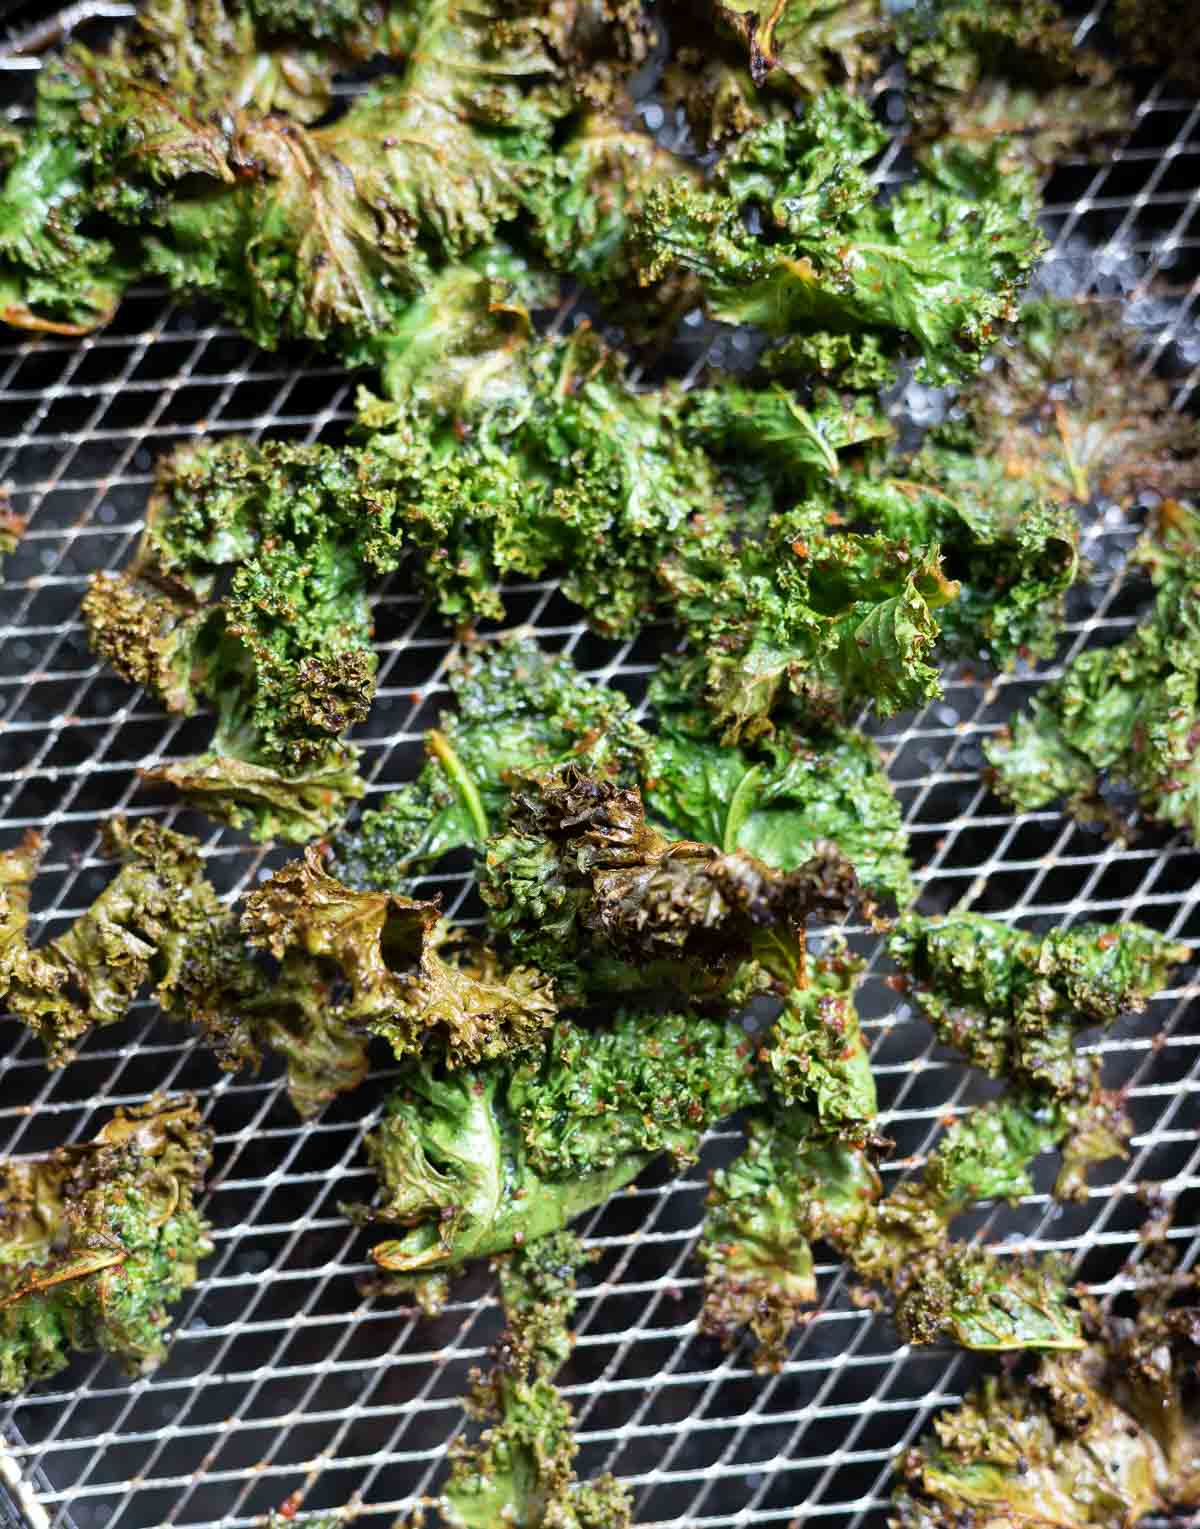 kale chips in air fryer basket